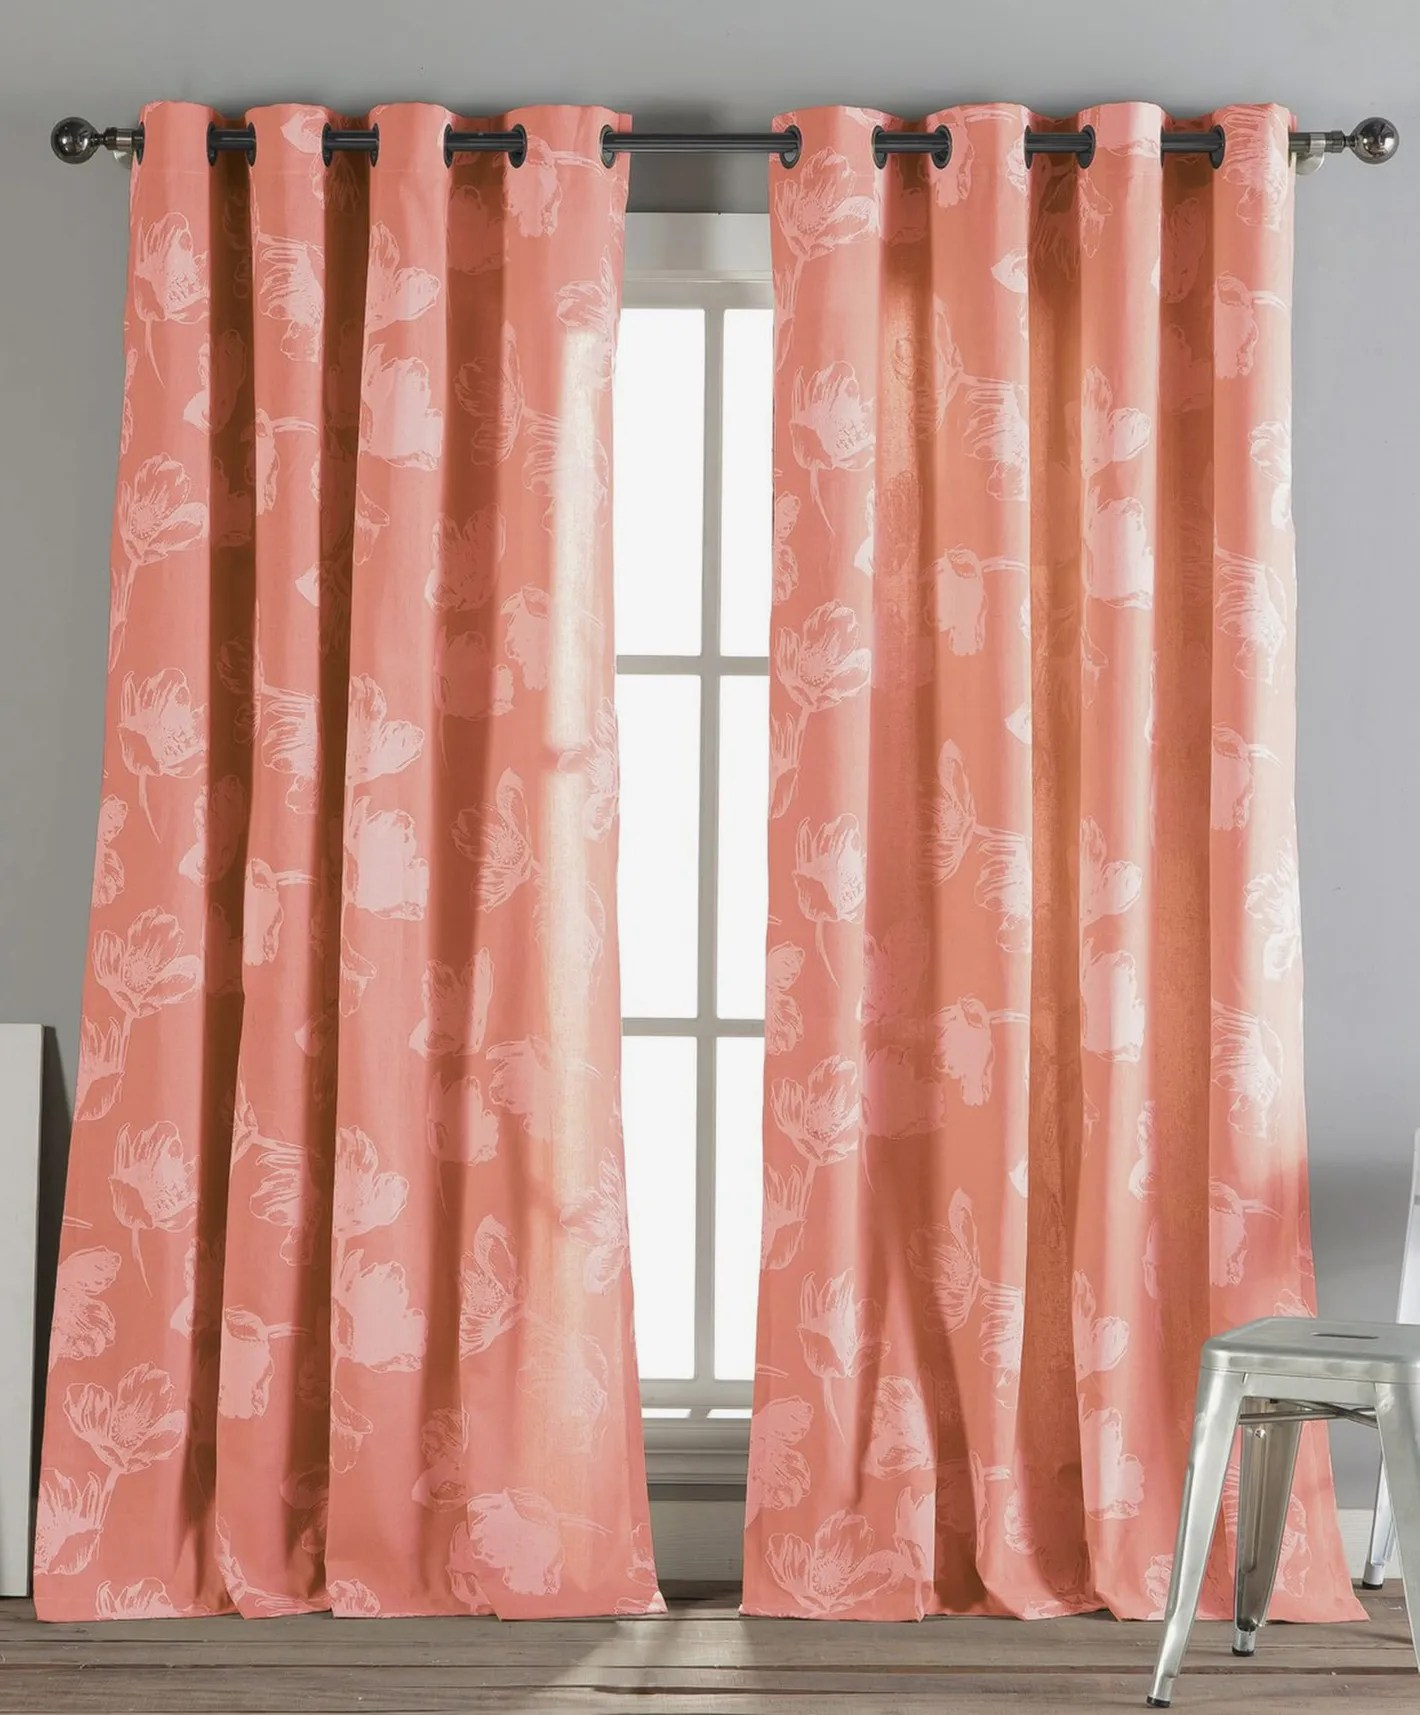 Sheer Curtains Australia 23 Best Curtains Shades Blinds Reviewed By Designers 2018